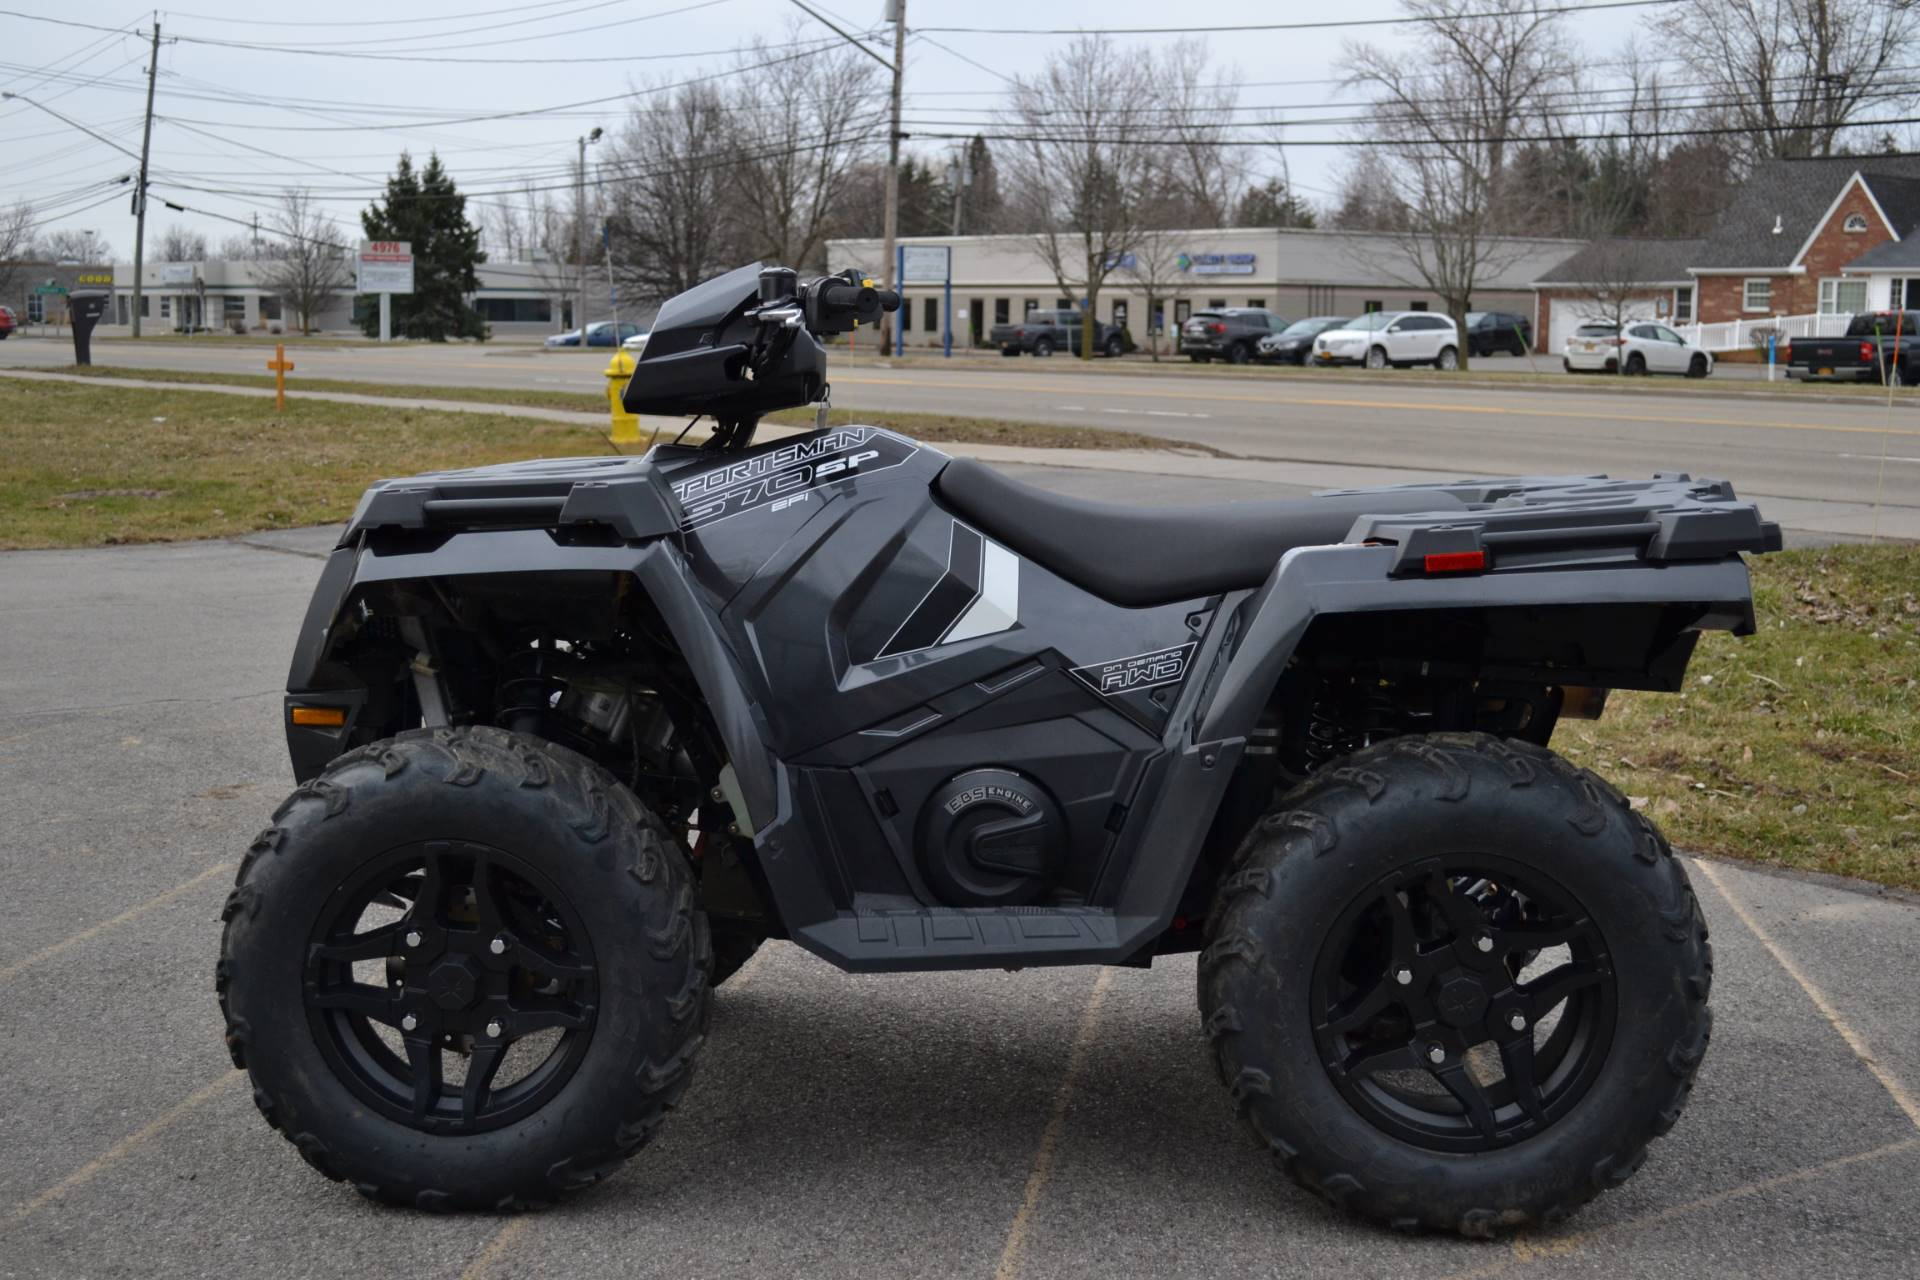 2019 Polaris POLARIS SPORTSMAN  570 SP in Depew, New York